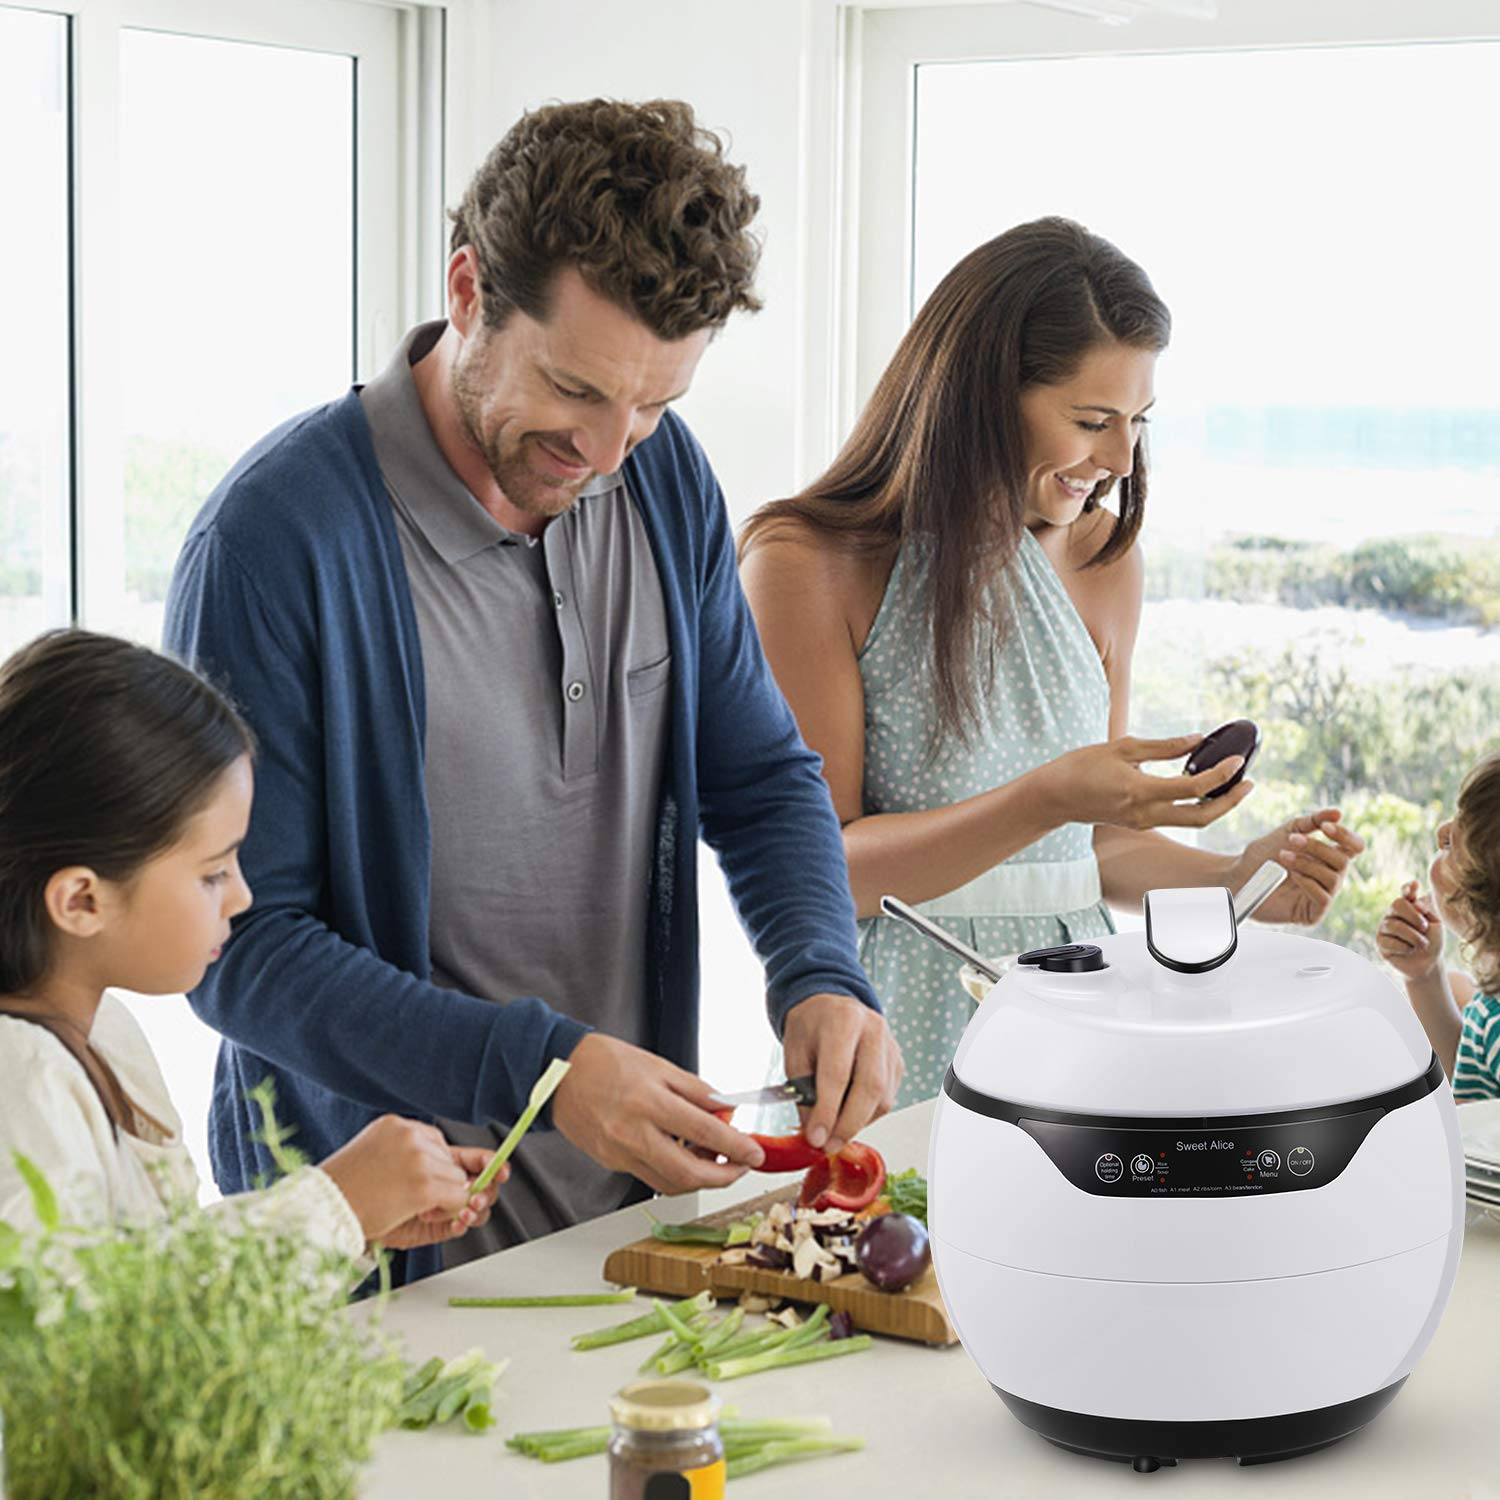 family and sweet alice instant pot